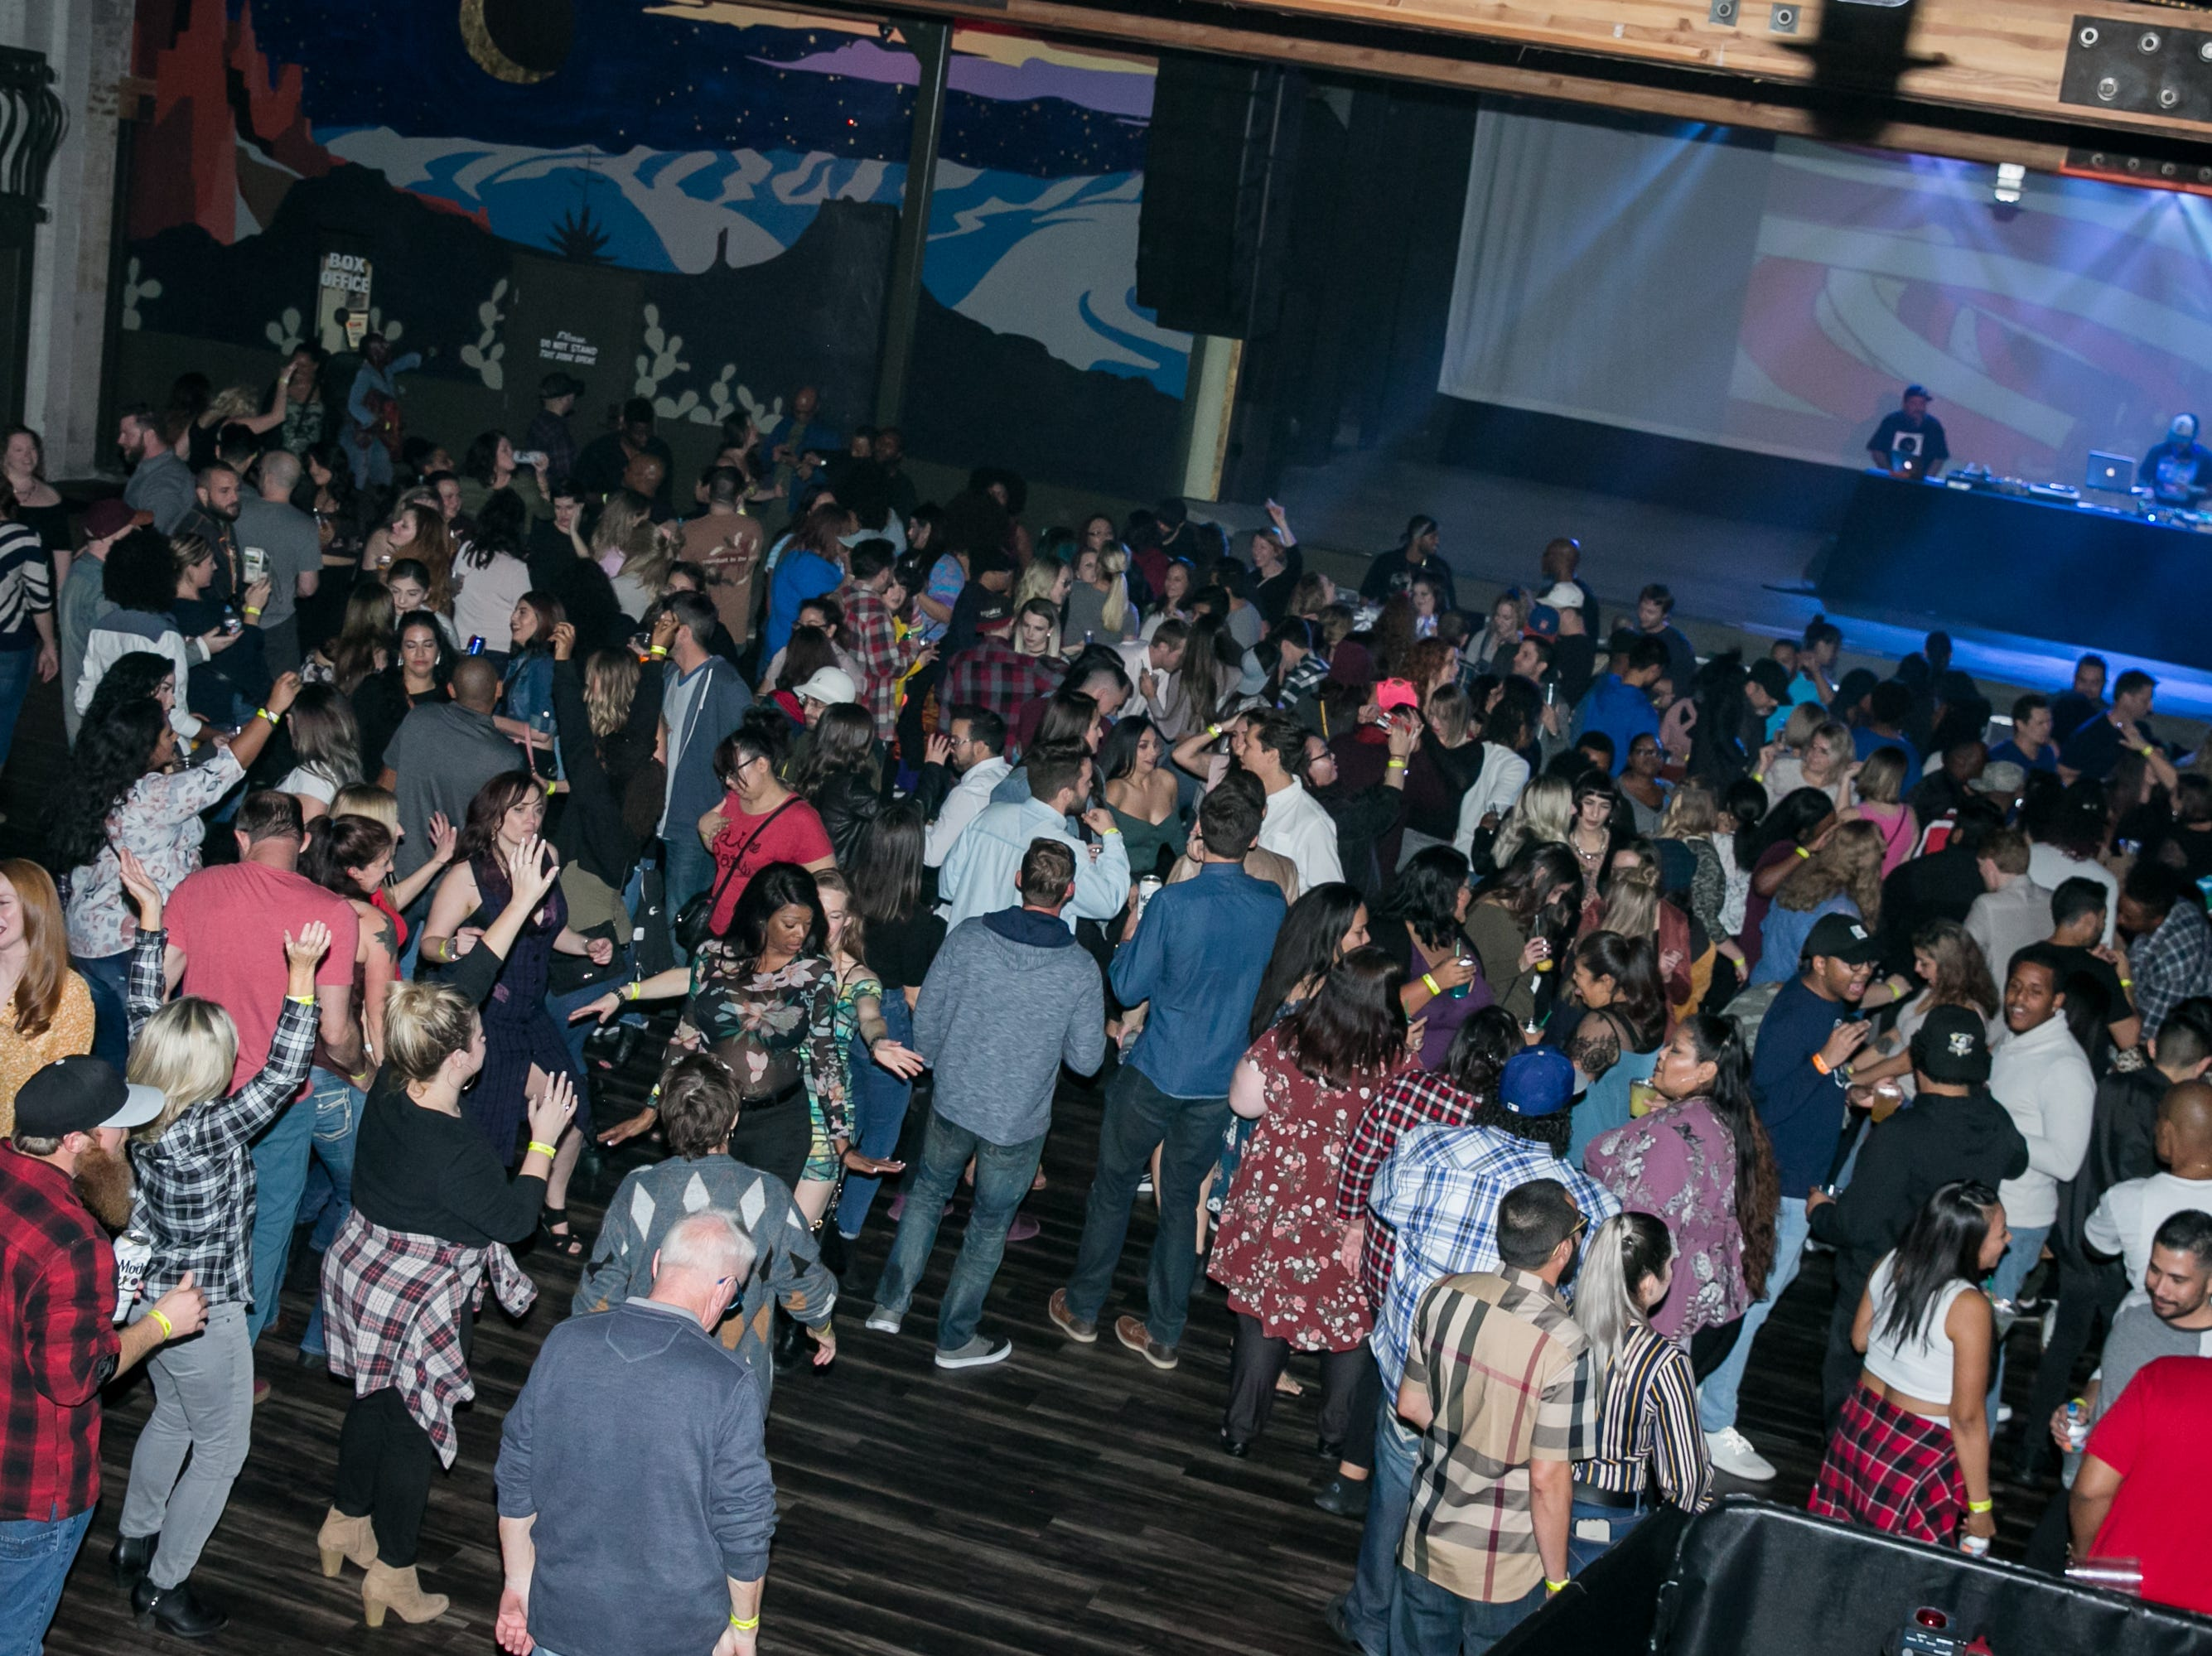 Everyone had a great time during Old School - 90's Hip Hop Dance Party at The Van Buren on Friday, November 30, 2018.